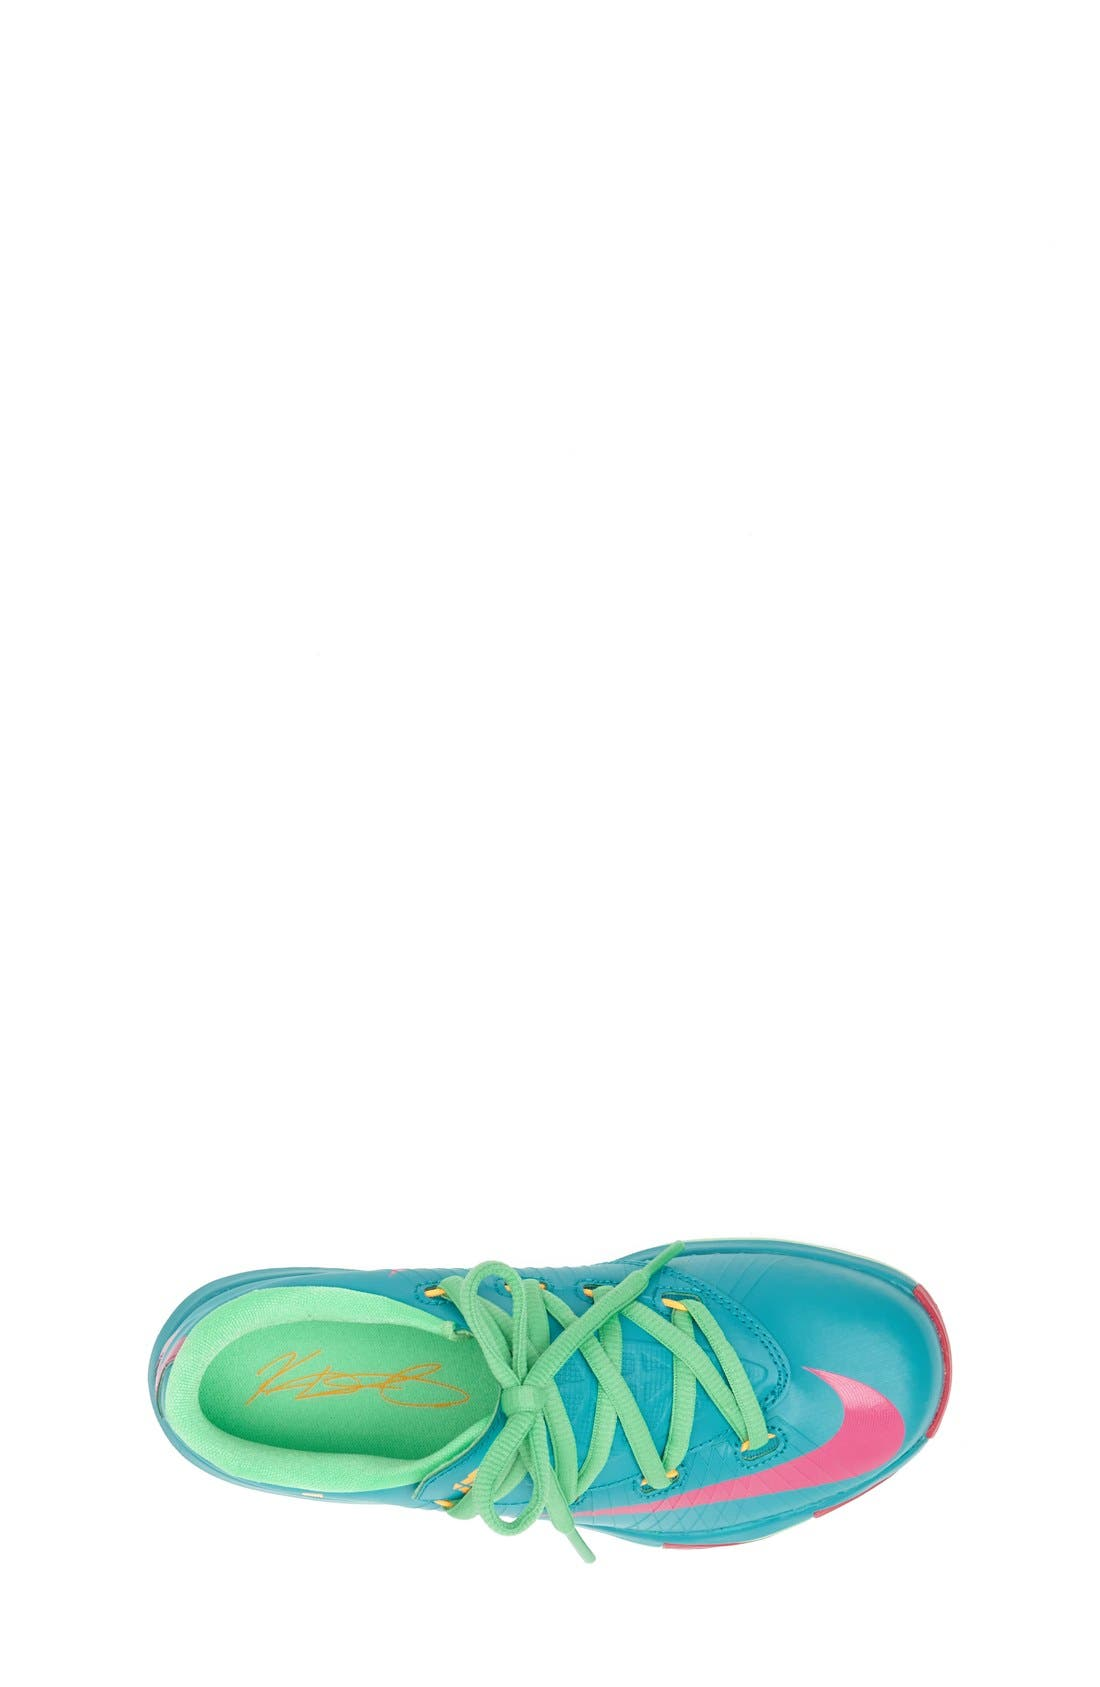 Alternate Image 3  - Nike 'KD VI' Basketball Shoe (Walker, Toddler & Little Kid)